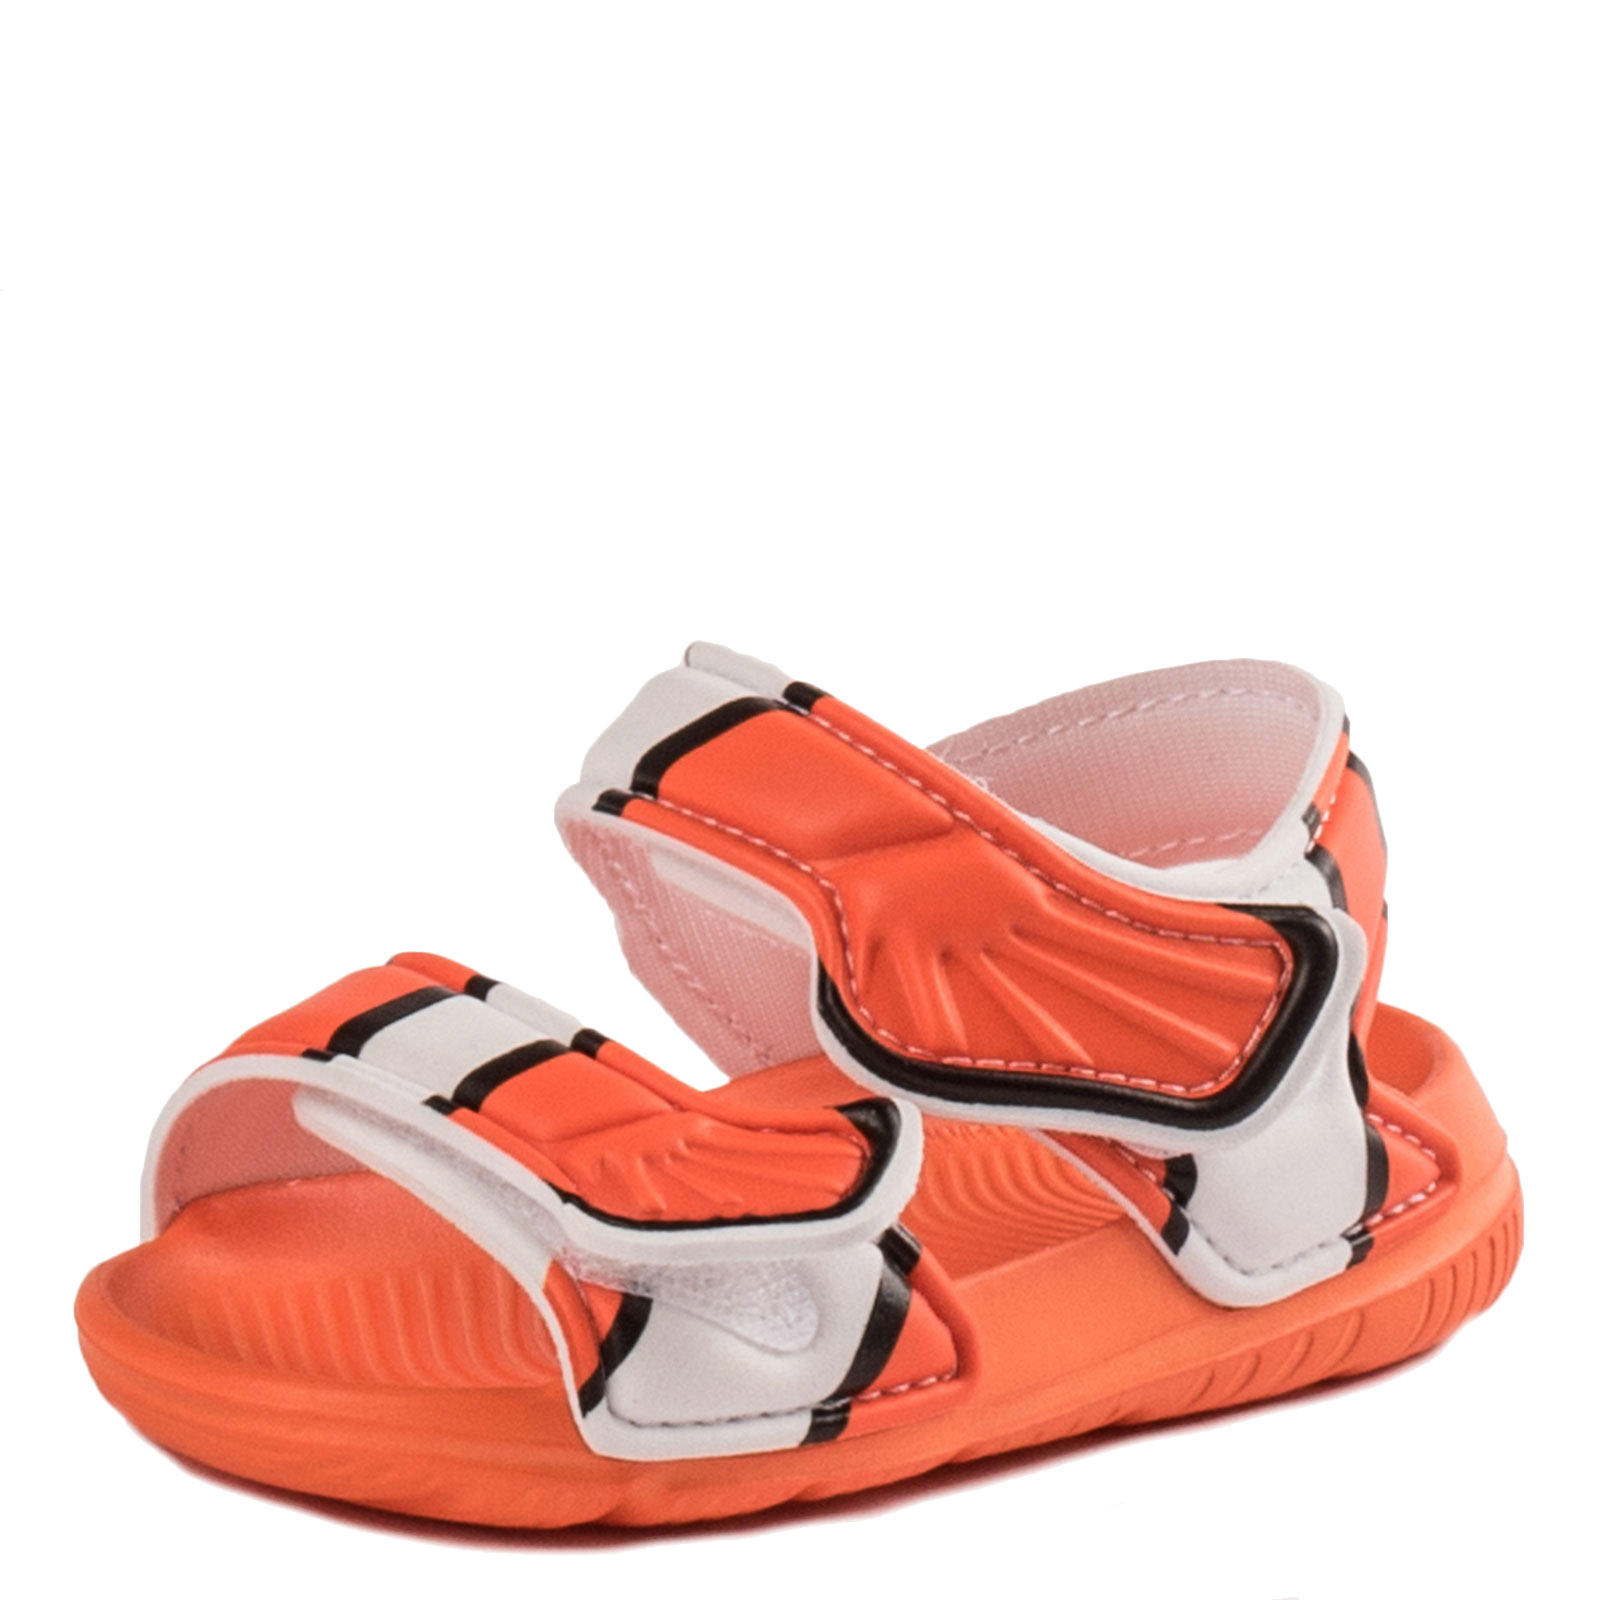 Available from 10.11 Adidas Children's sports shoes AF3921 oudiniao sports and leisure shoes